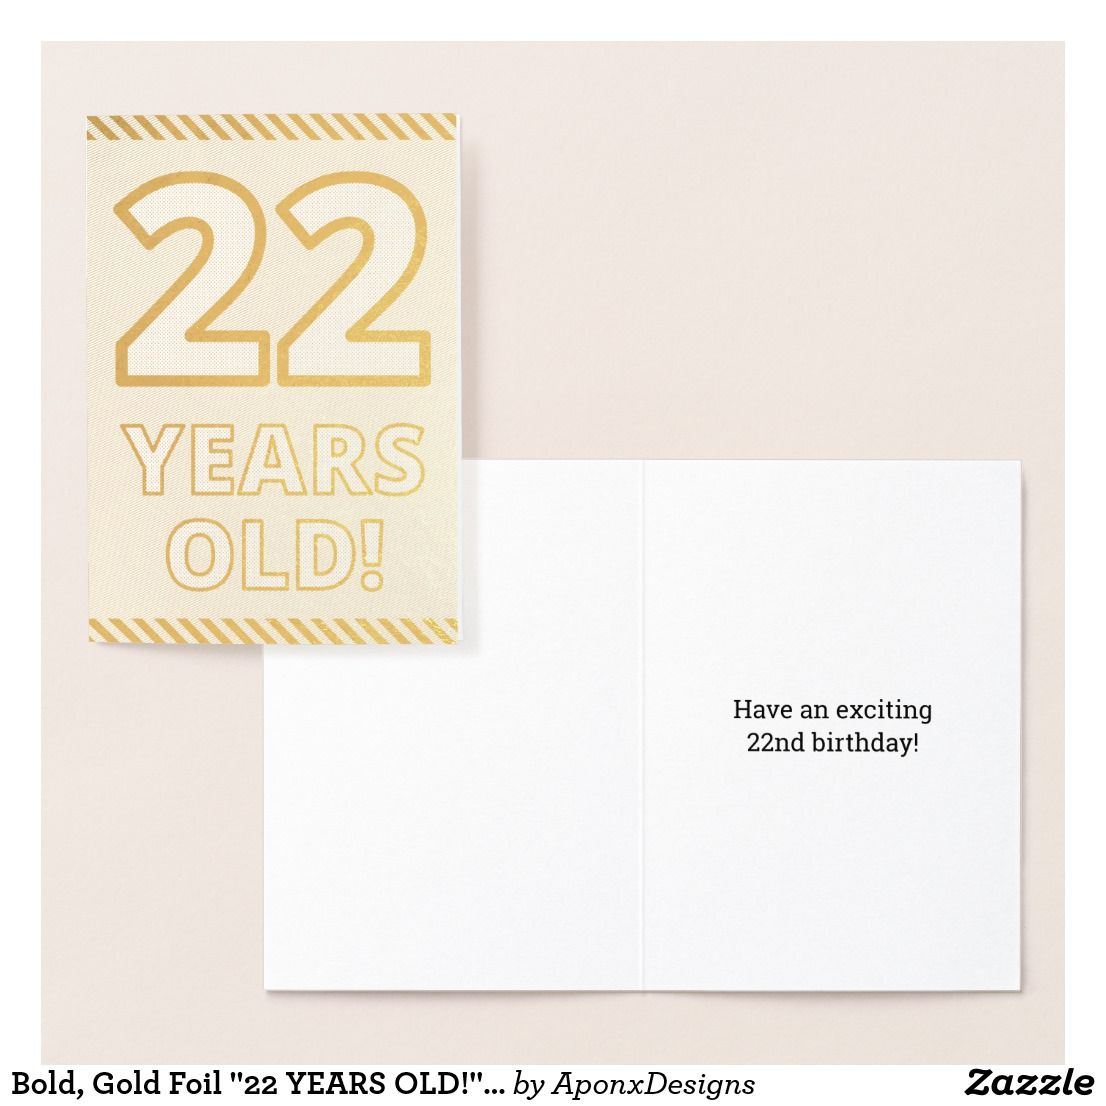 Bold Gold Foil 22 YEARS OLD Birthday Card